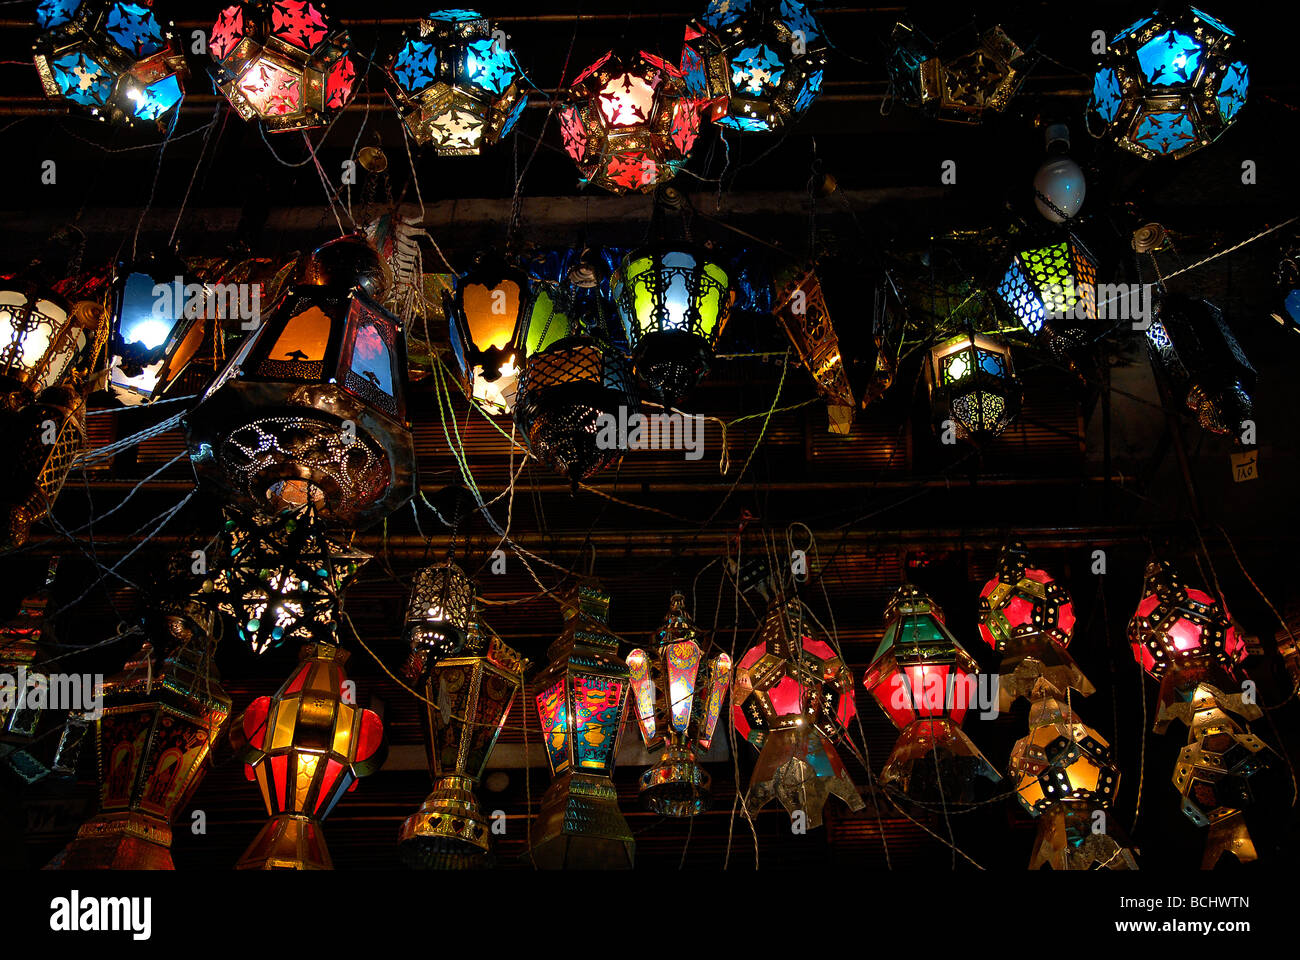 In Ramadan people buy lanterns so called fanooz to decorate their home with it. An old tradition, done by everybody. - Stock Image